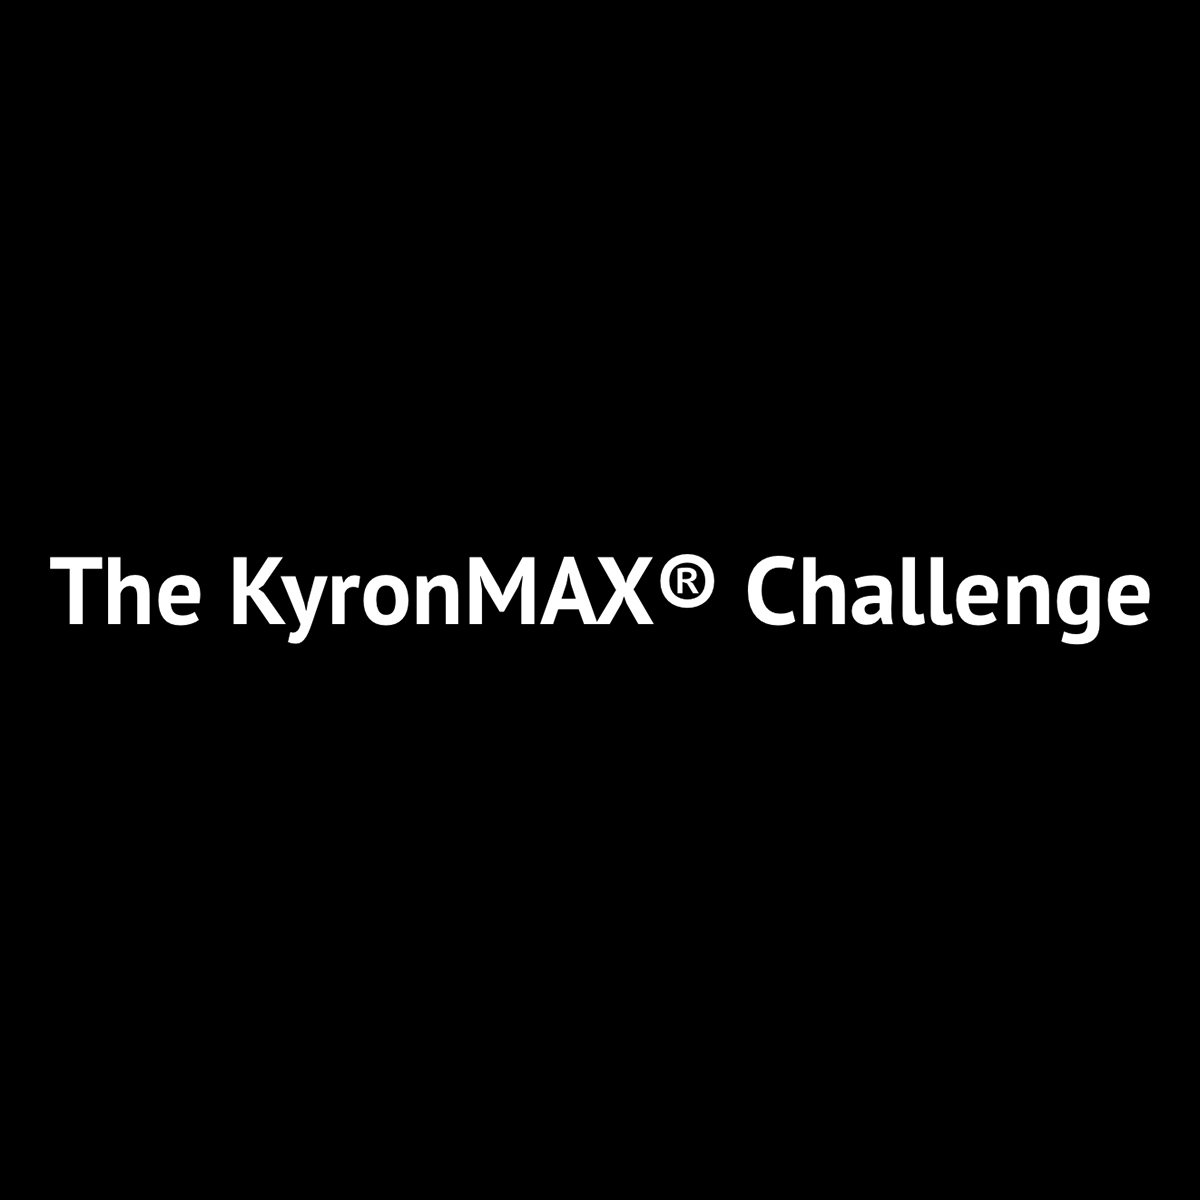 Mitsubishi Chemical Advanced Materials Launches KyronMAX Challenge